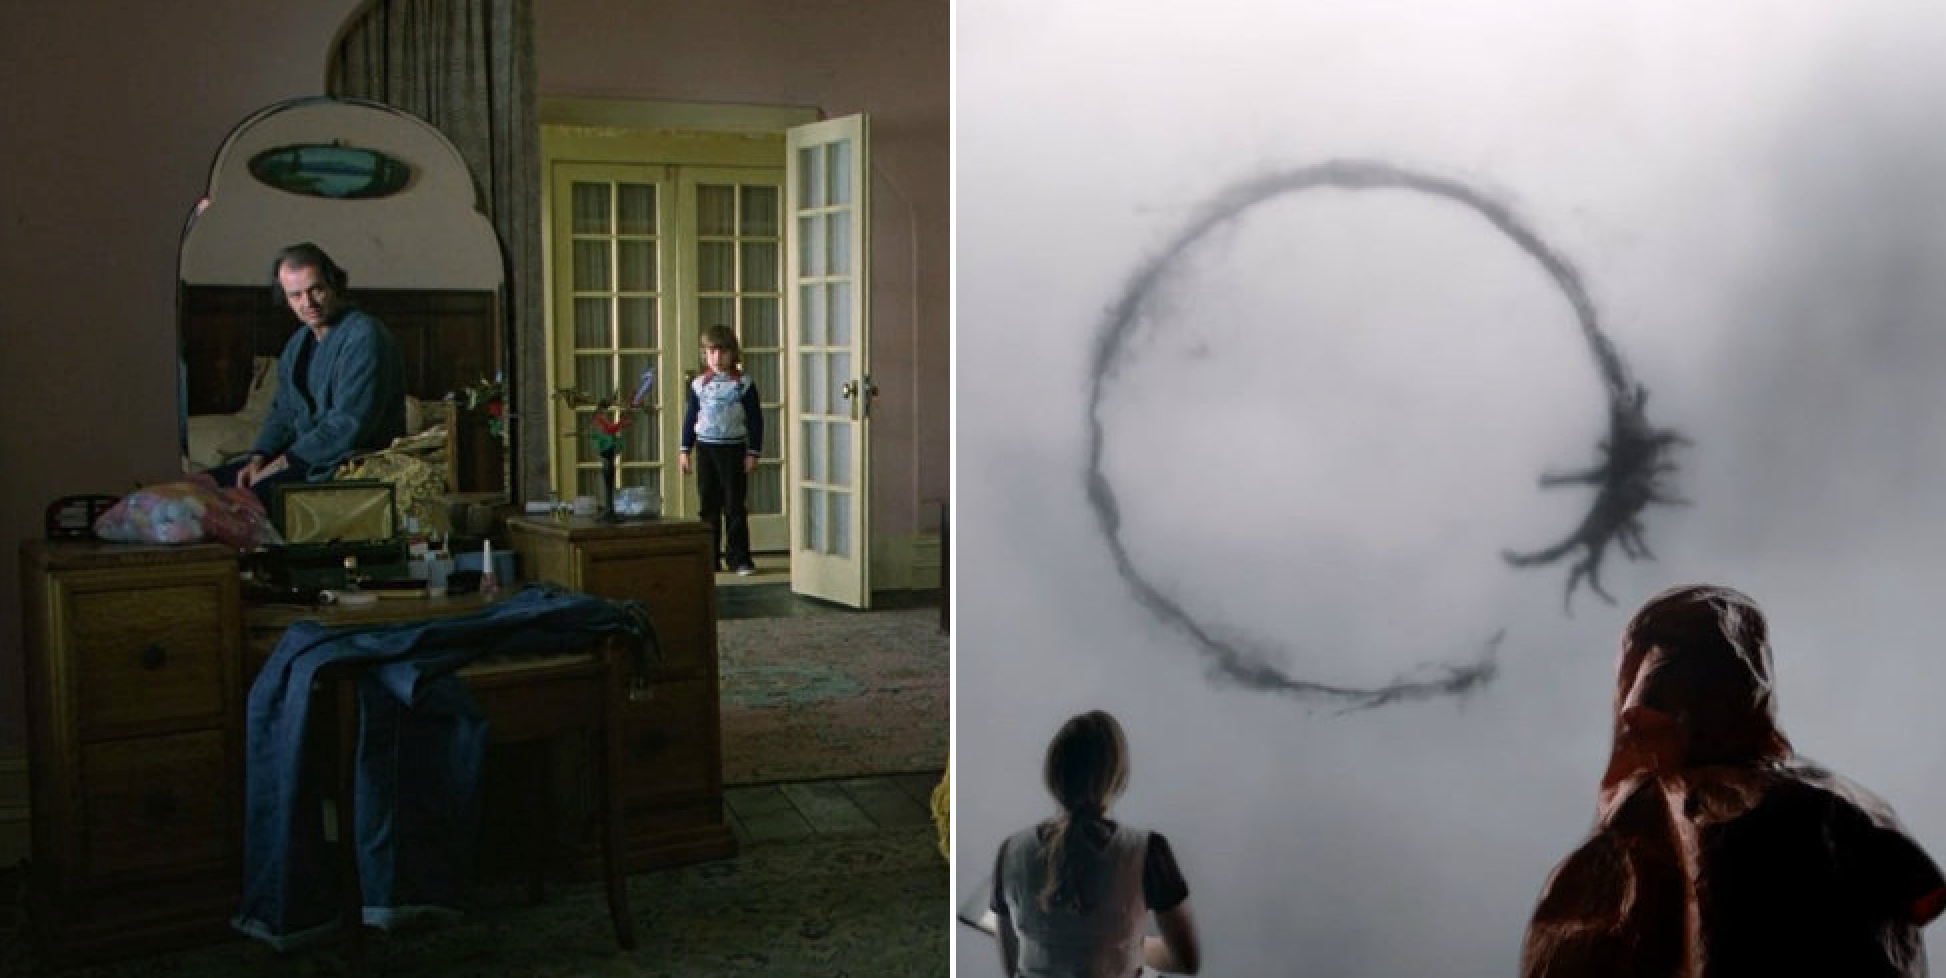 Symbols You Missed In Major Films And The Deep Meaning Behind Them